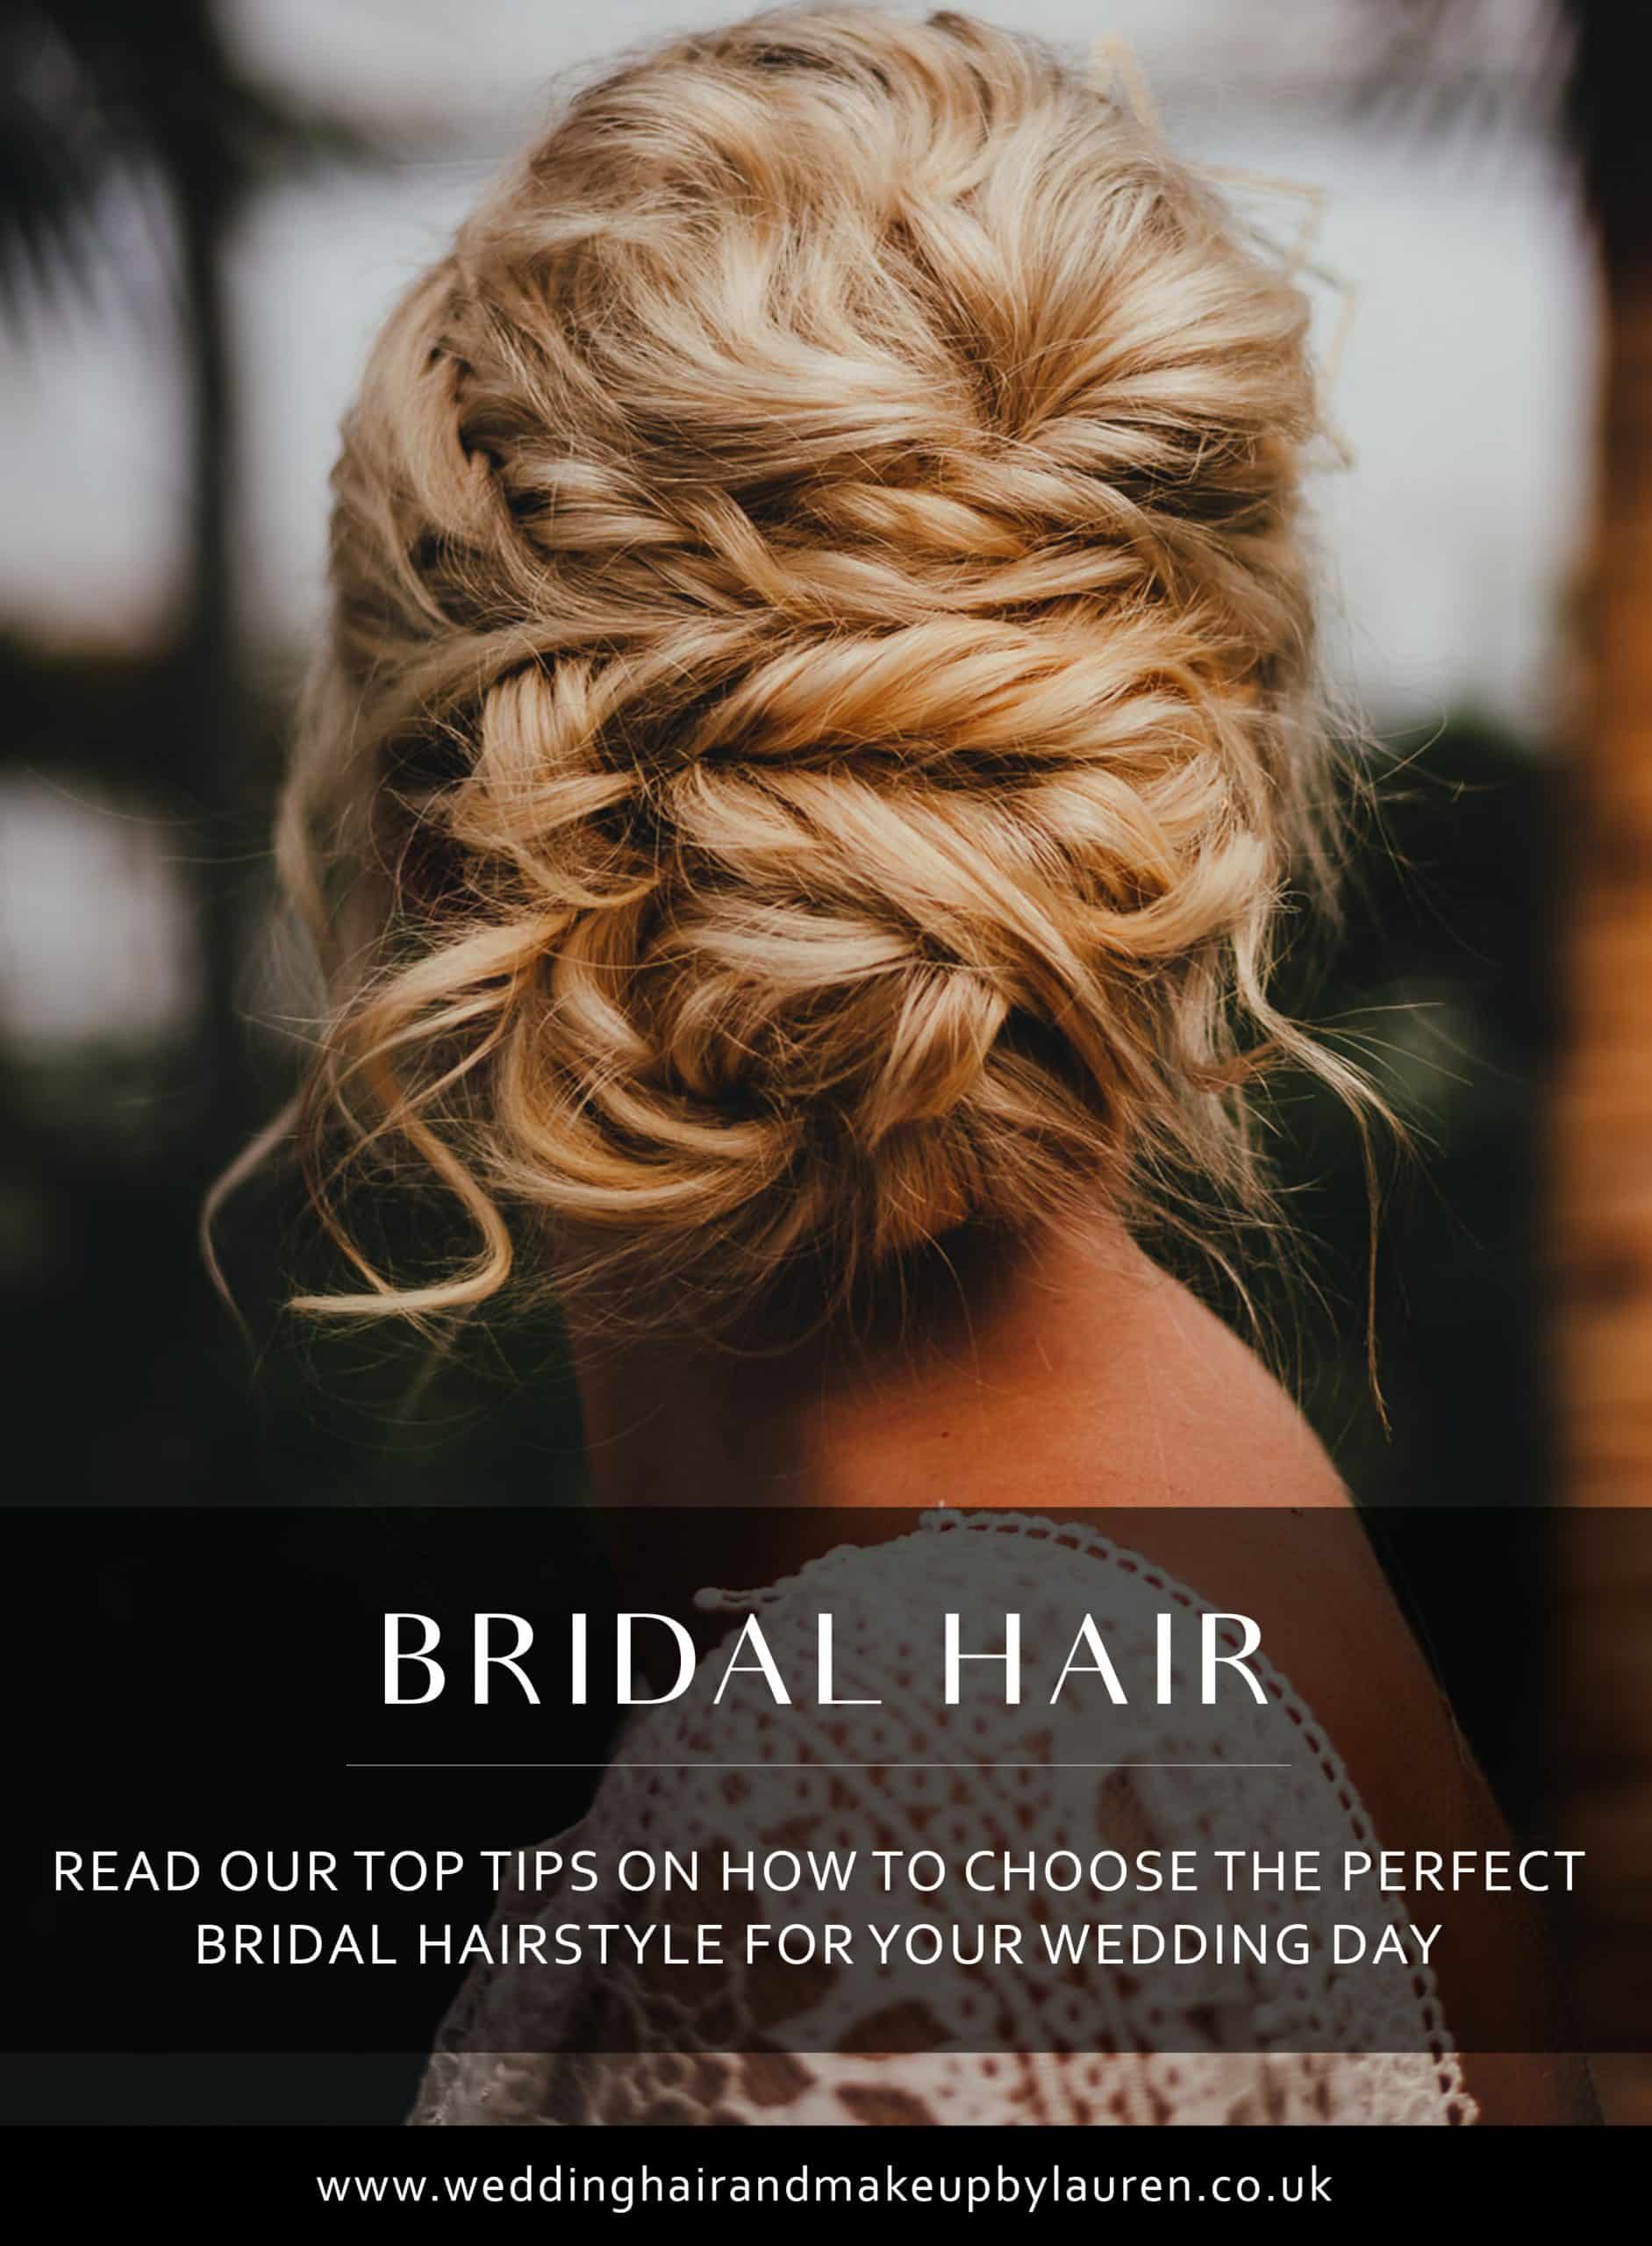 Bridal Hair Tips